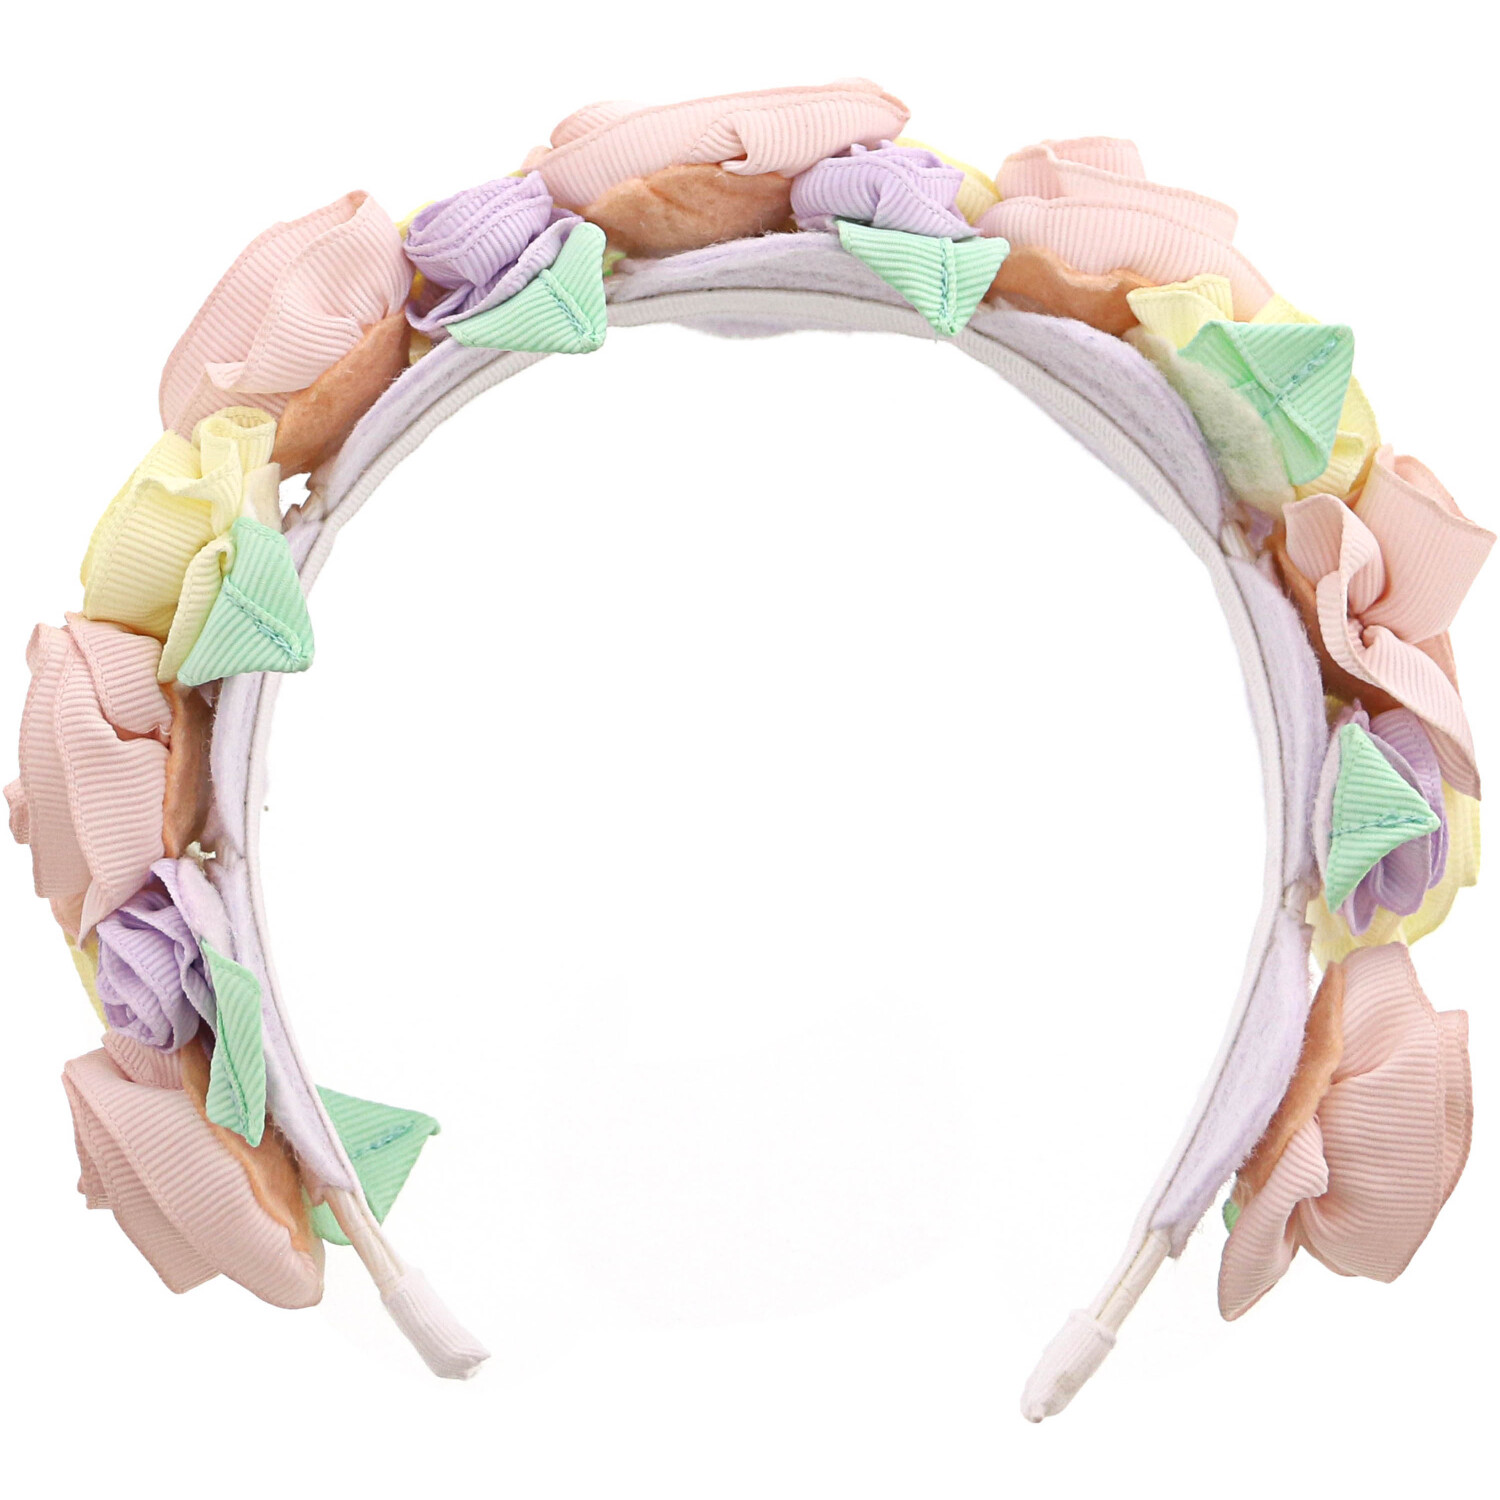 Janie And Jack Girl's Rosette Headband Hair Accessory - One Size - Petal Pink